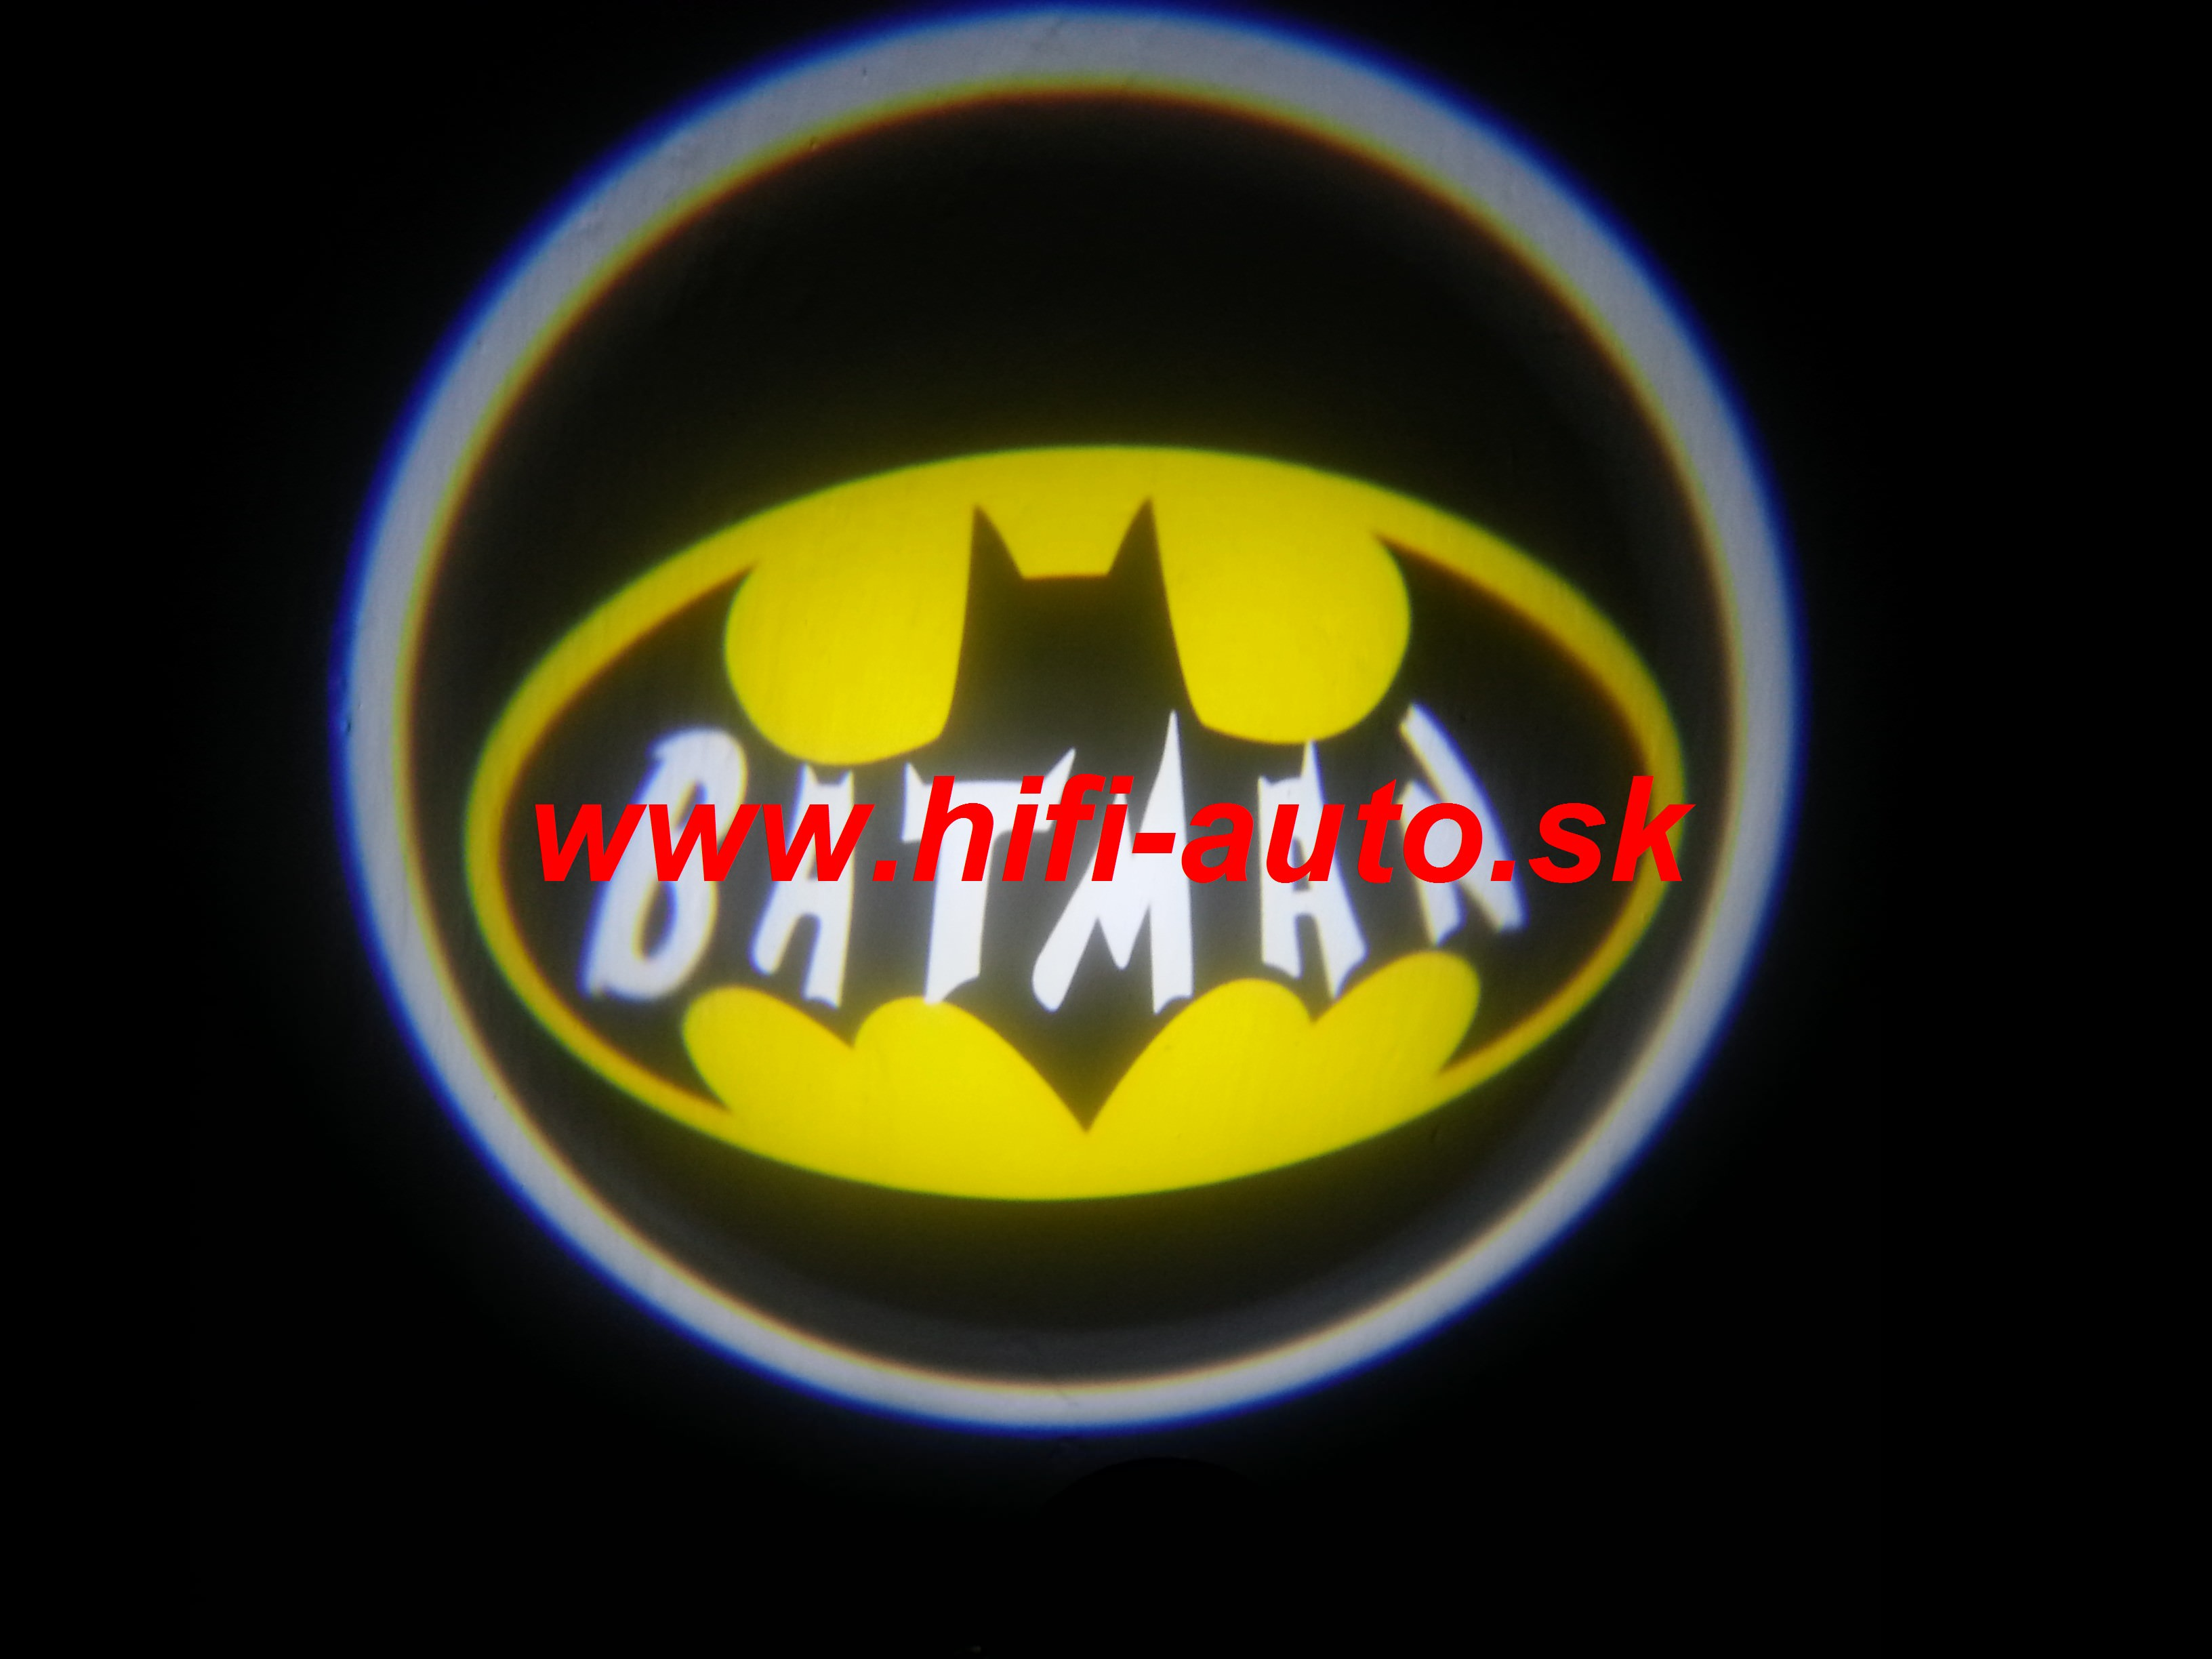 LED logo projektor Batman